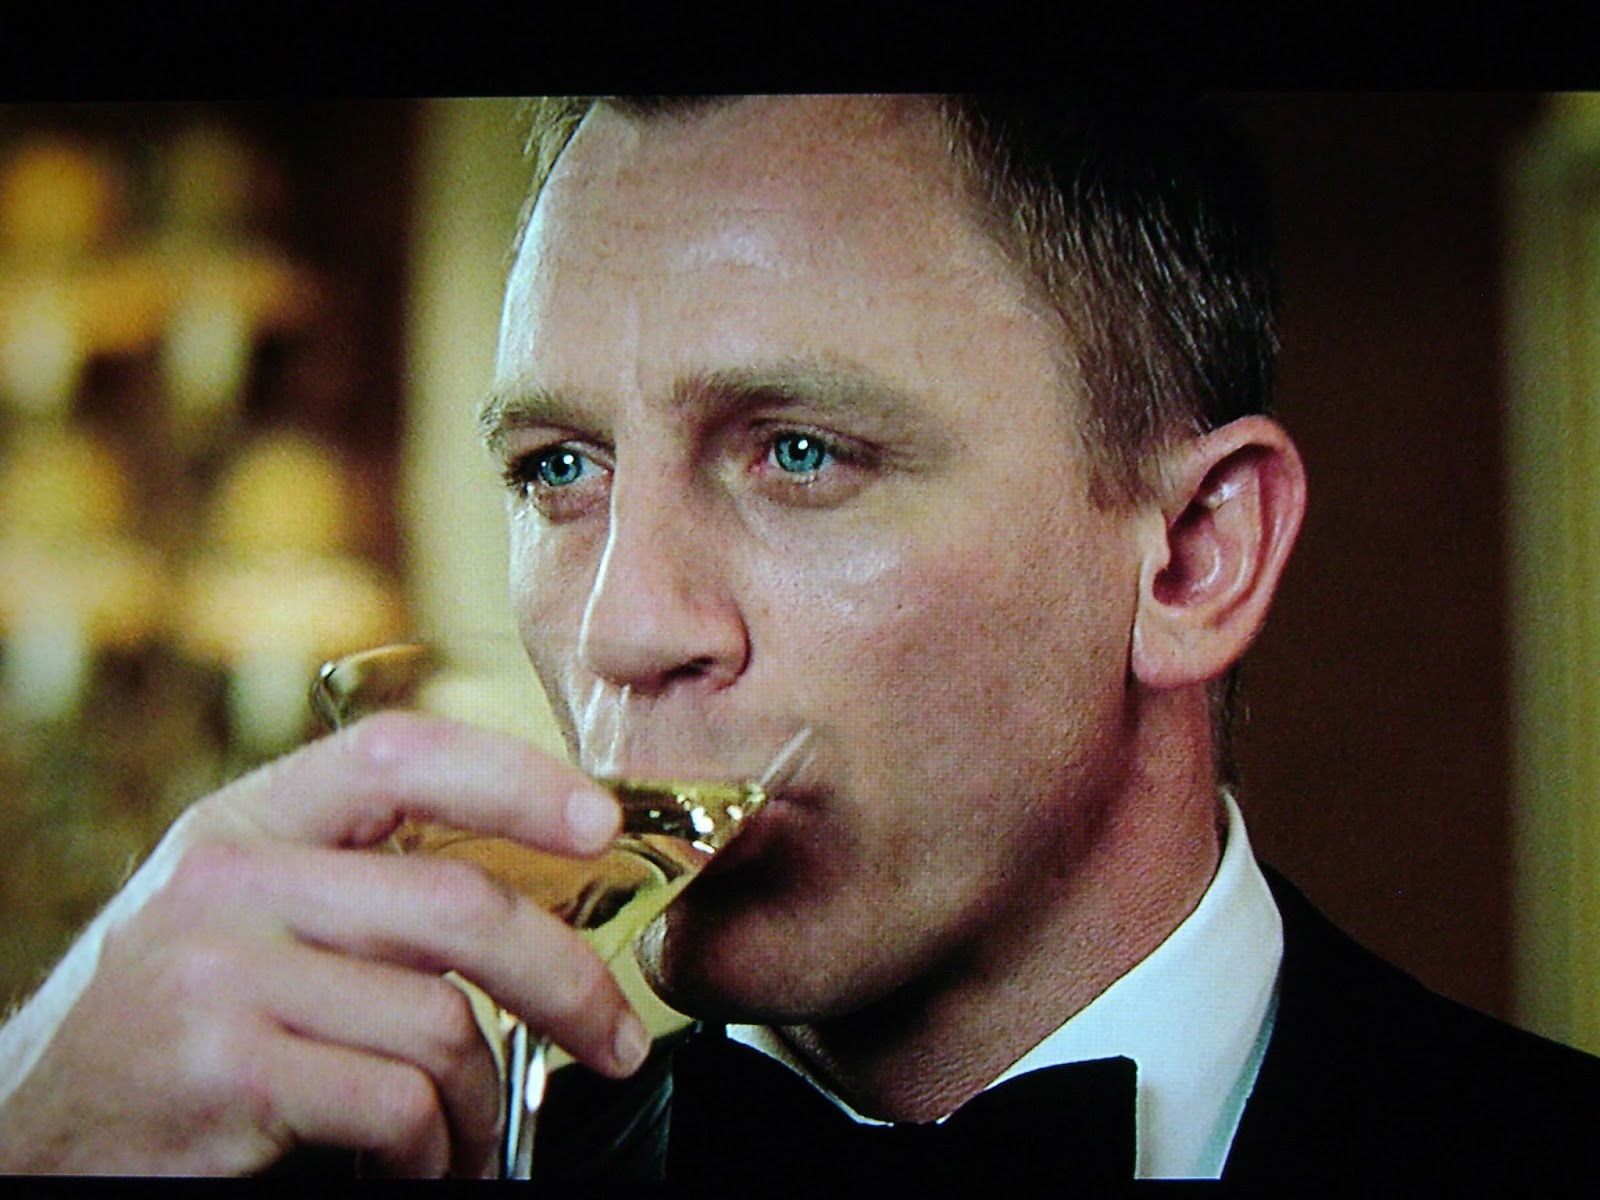 Drink james bond casino royale instagram millionaire poker player